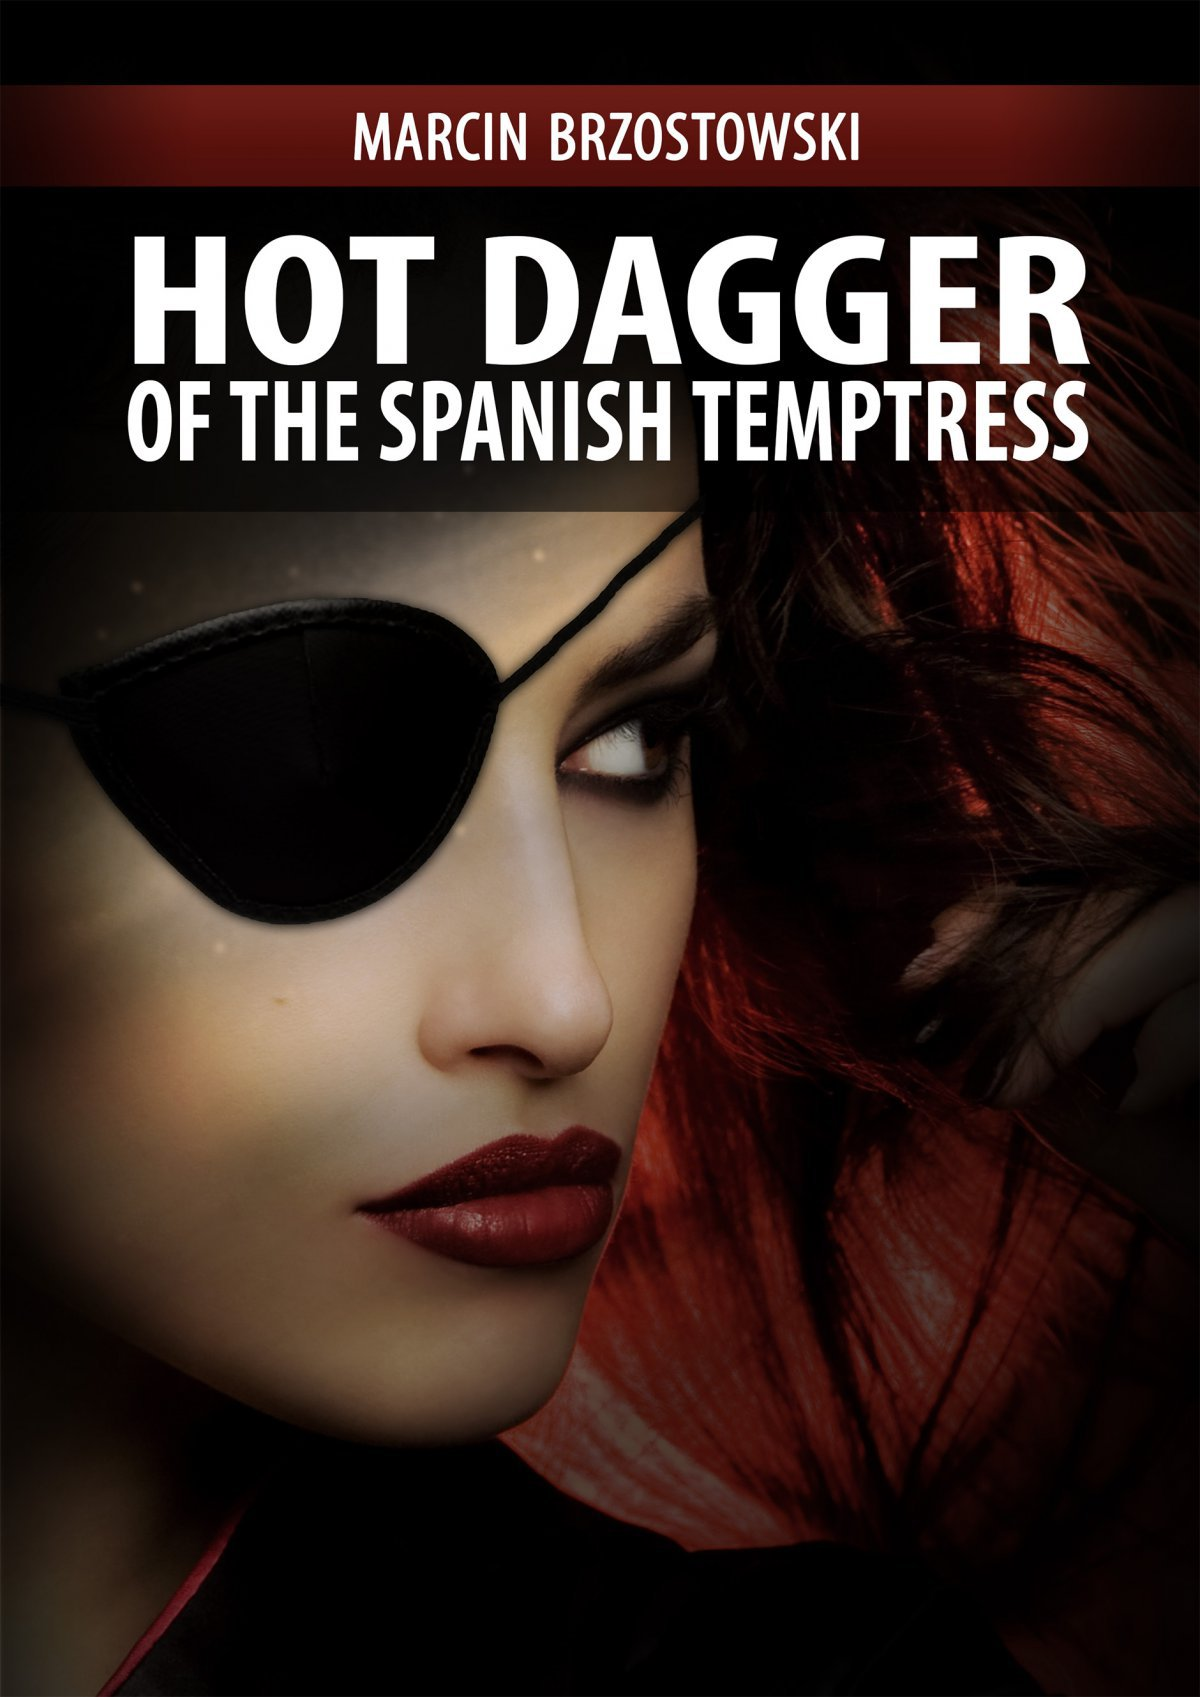 Hot Dagger of the Spanish Temptress - Ebook (Książka EPUB) do pobrania w formacie EPUB